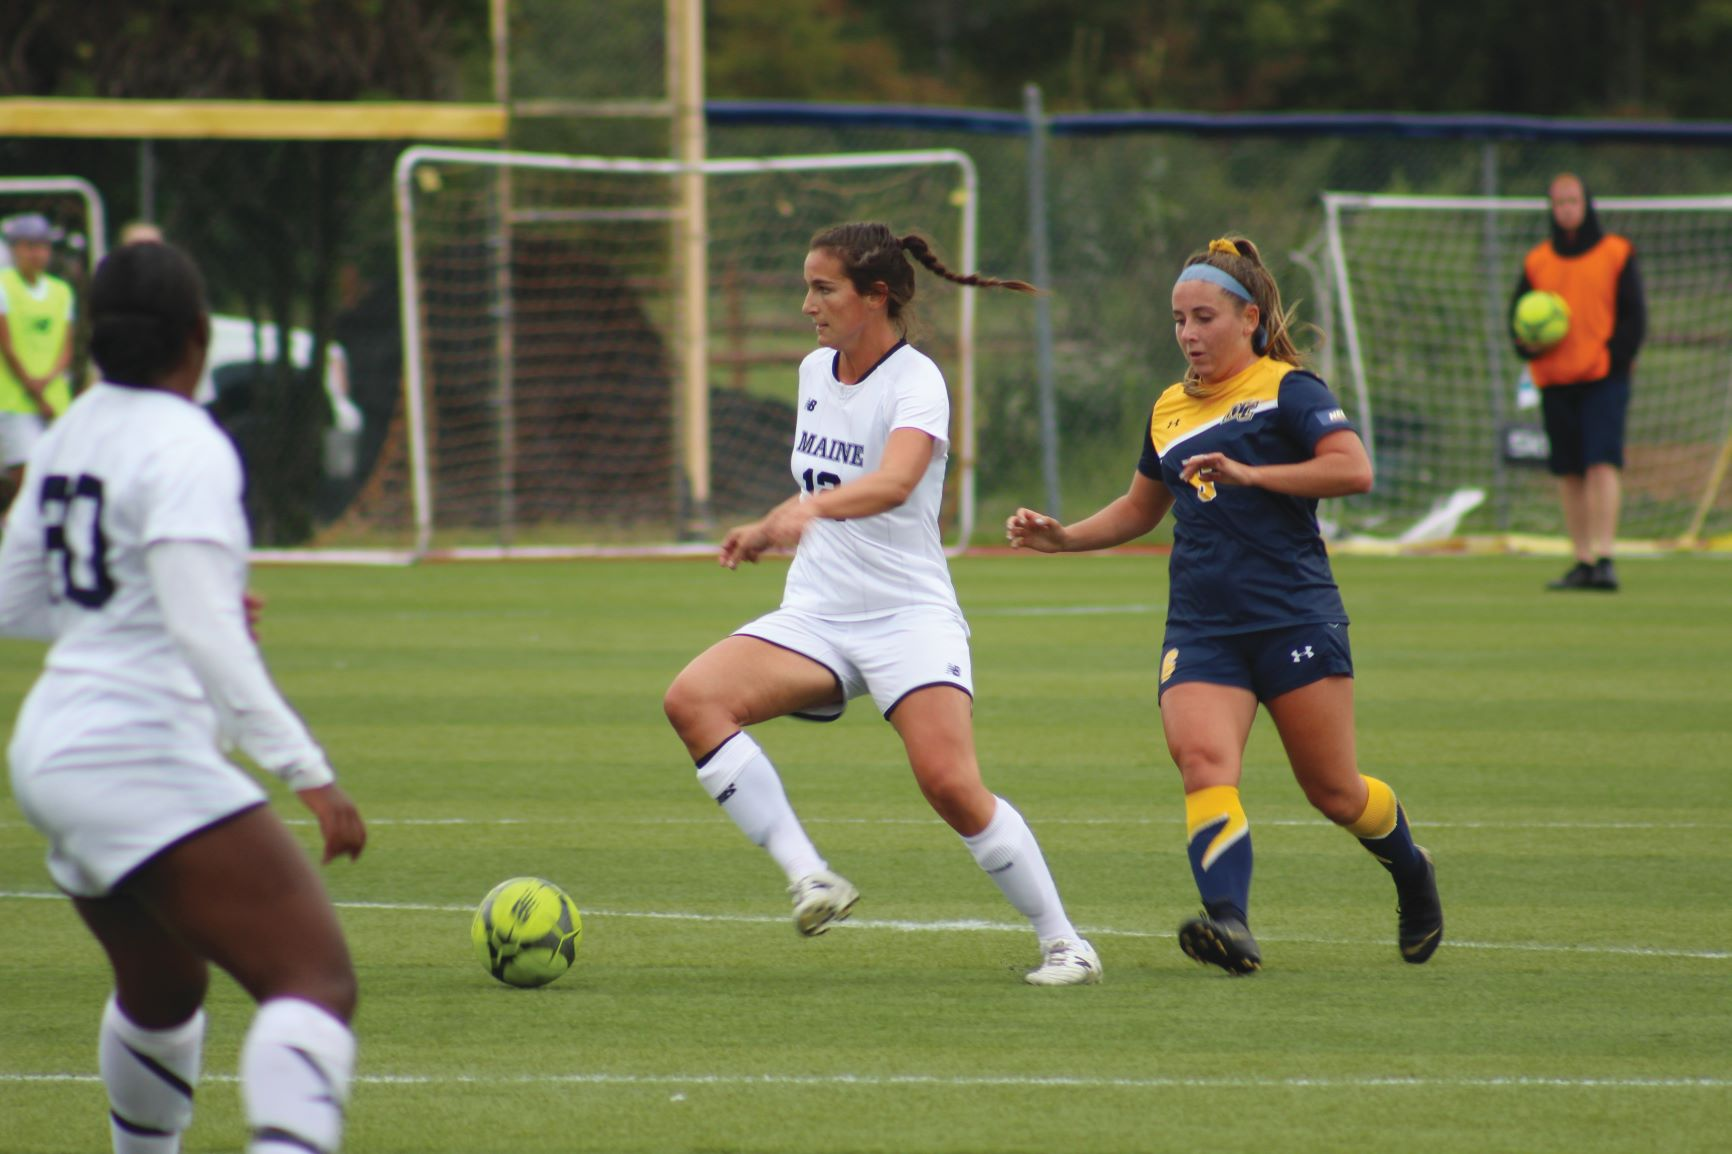 Women's soccer starts season strong with a 3-1 record – The